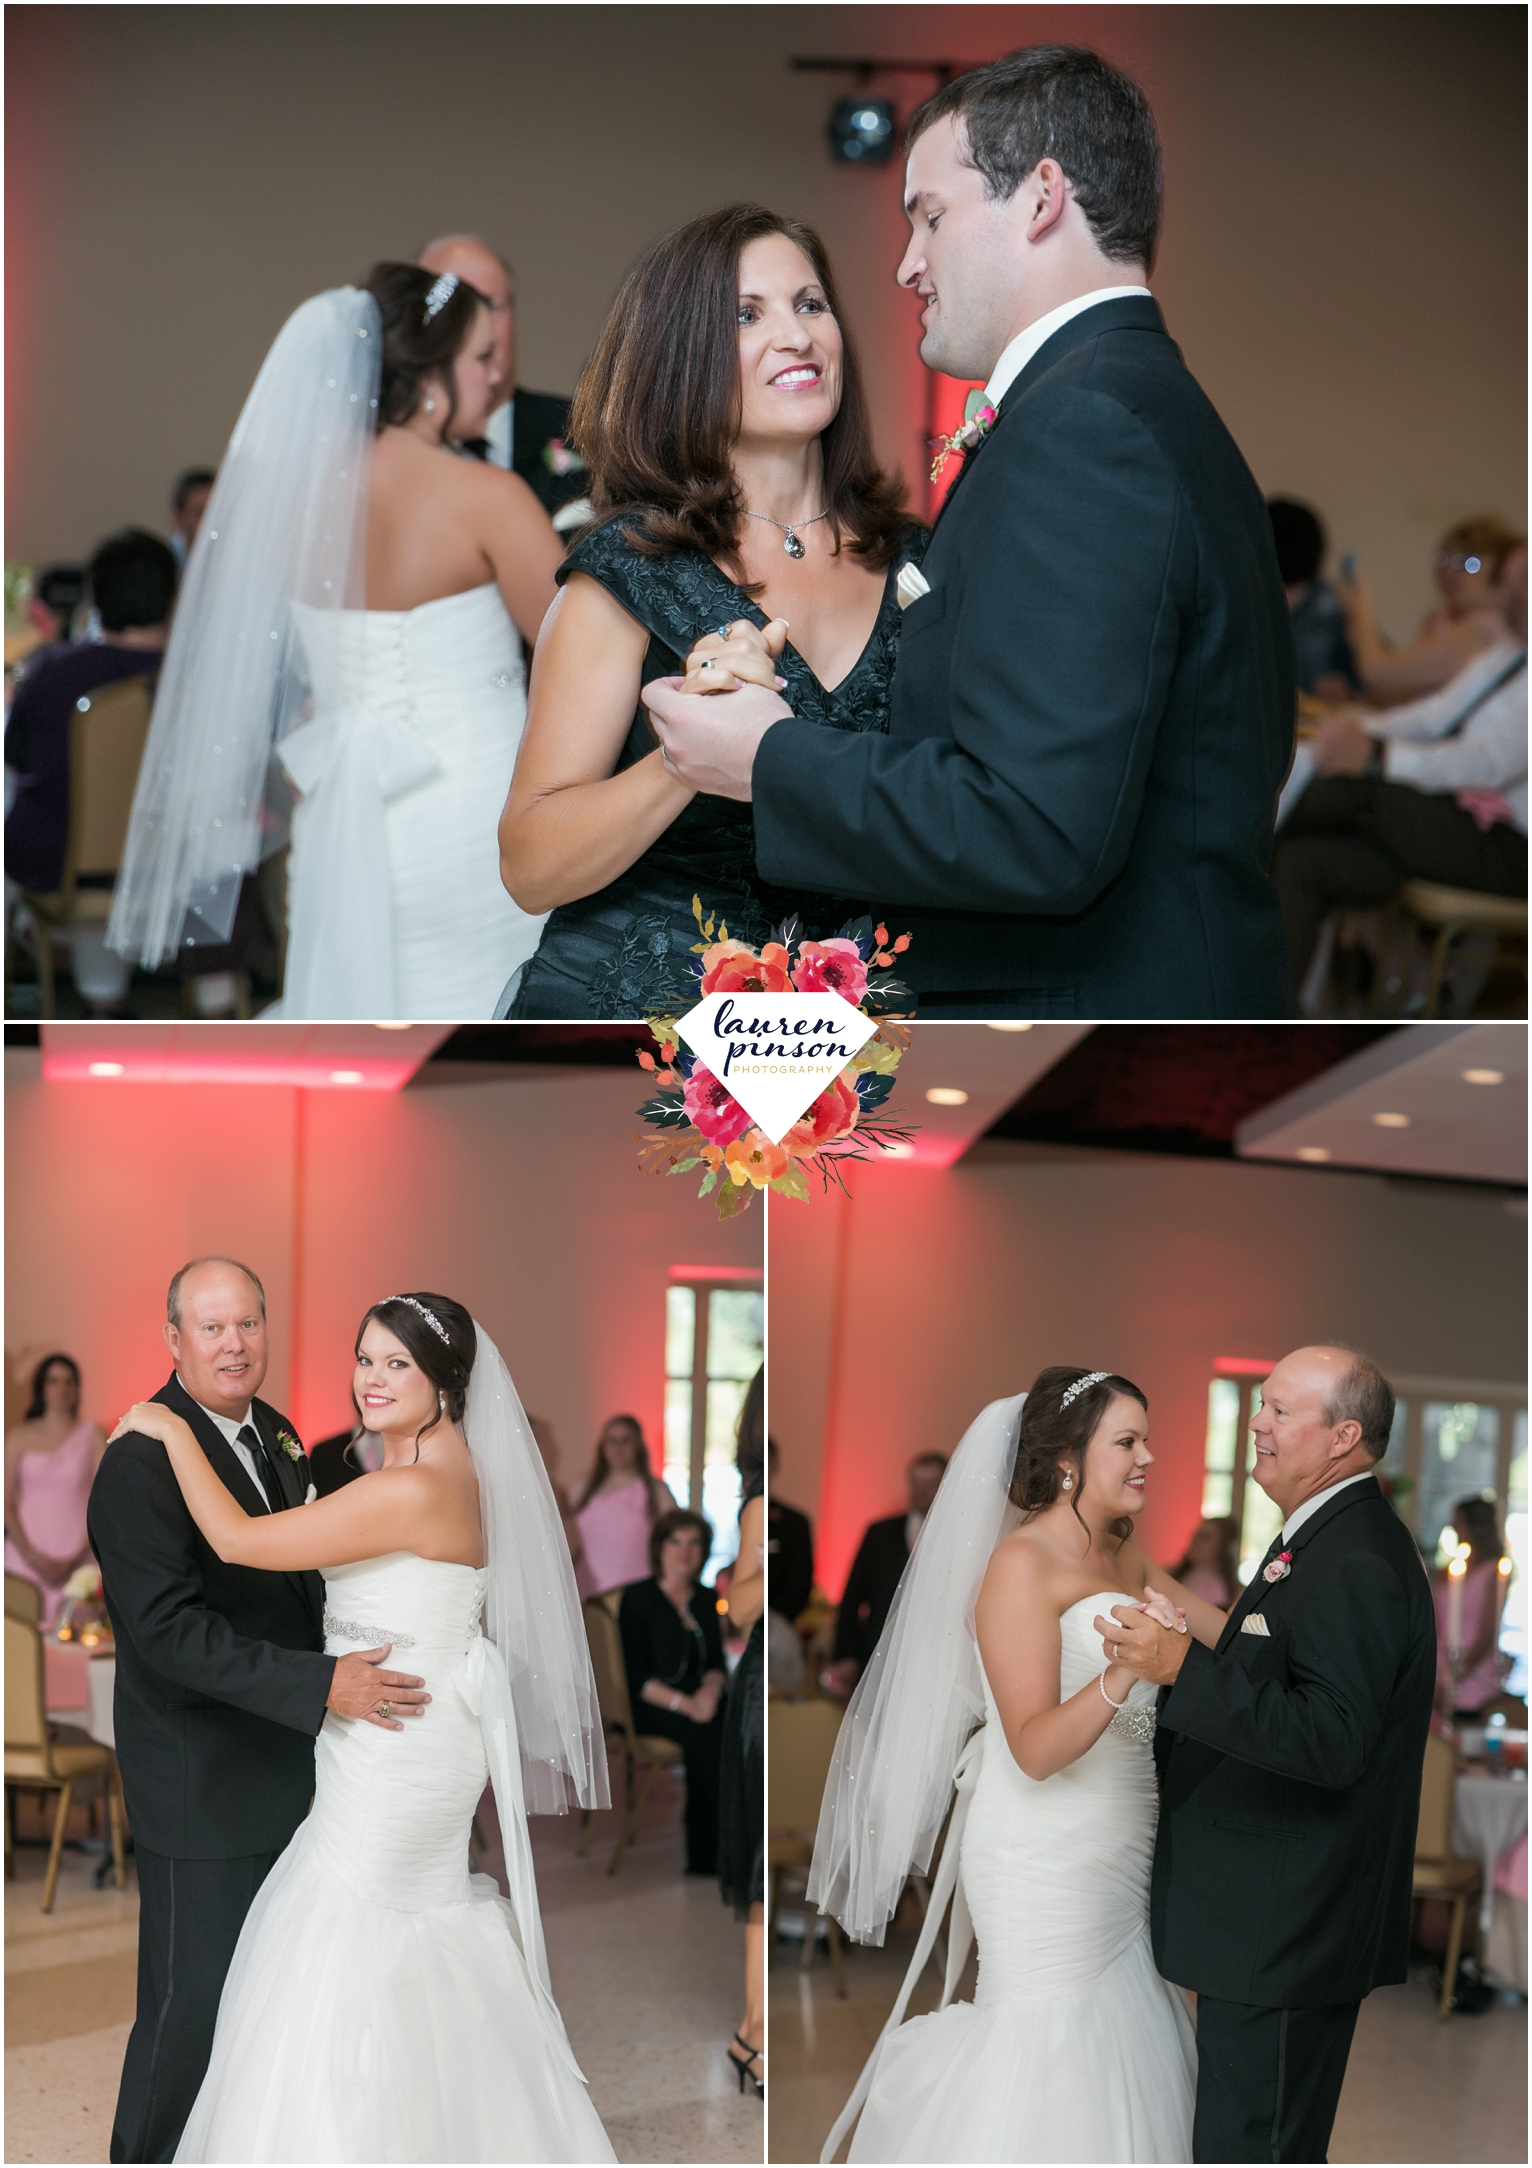 wichita-falls-wedding-photographer-kemp-center-at-the-forum-photography-two-clever-chicks_1069.jpg